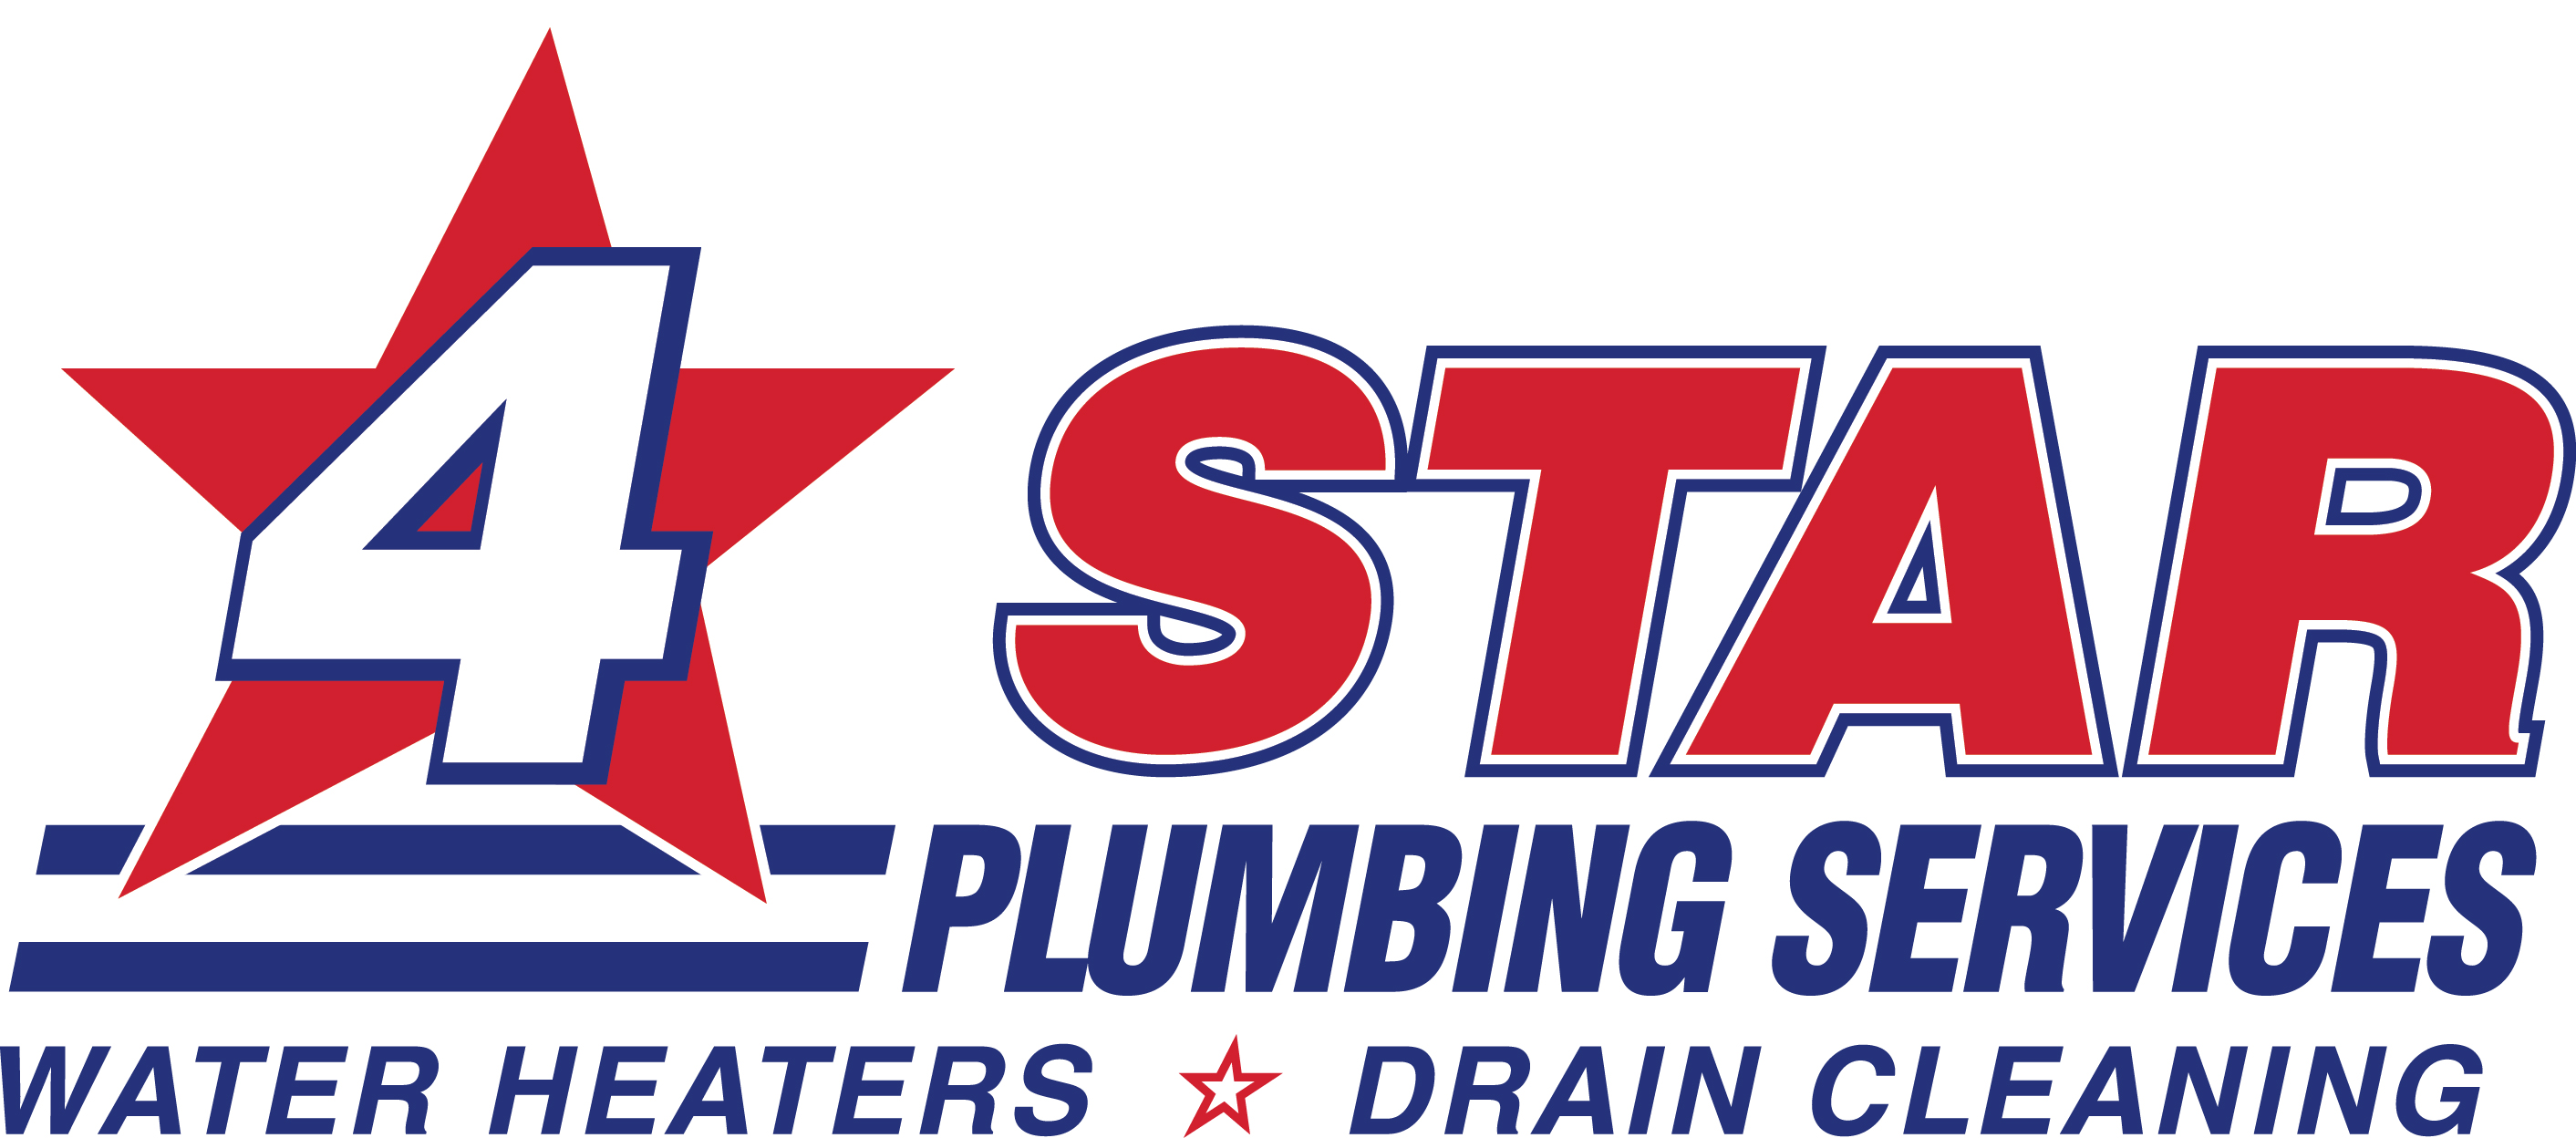 4Star Plumbing Services